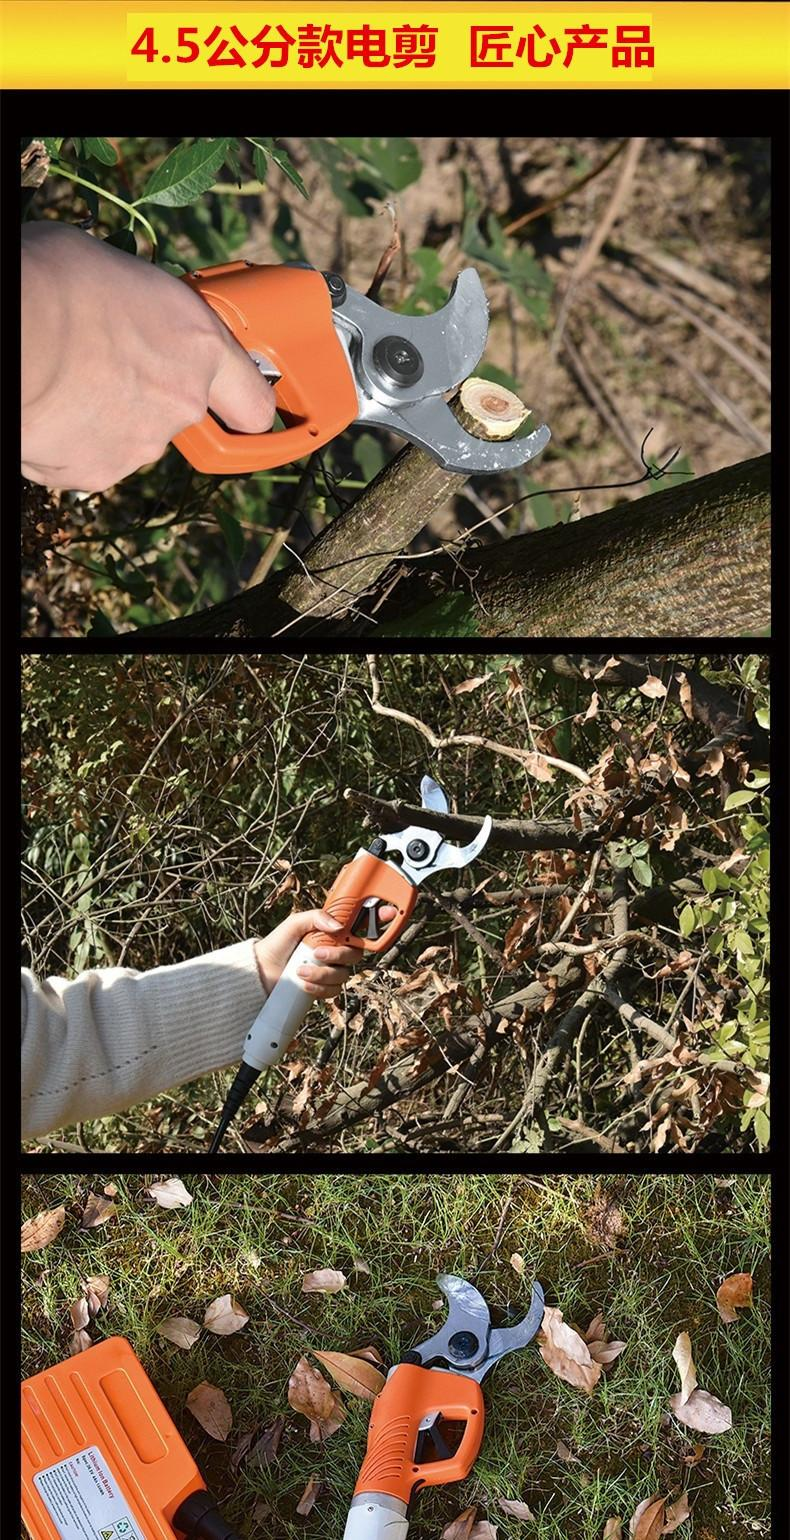 Electric pruning shears garden electric secateurs orchard electric scissors 4